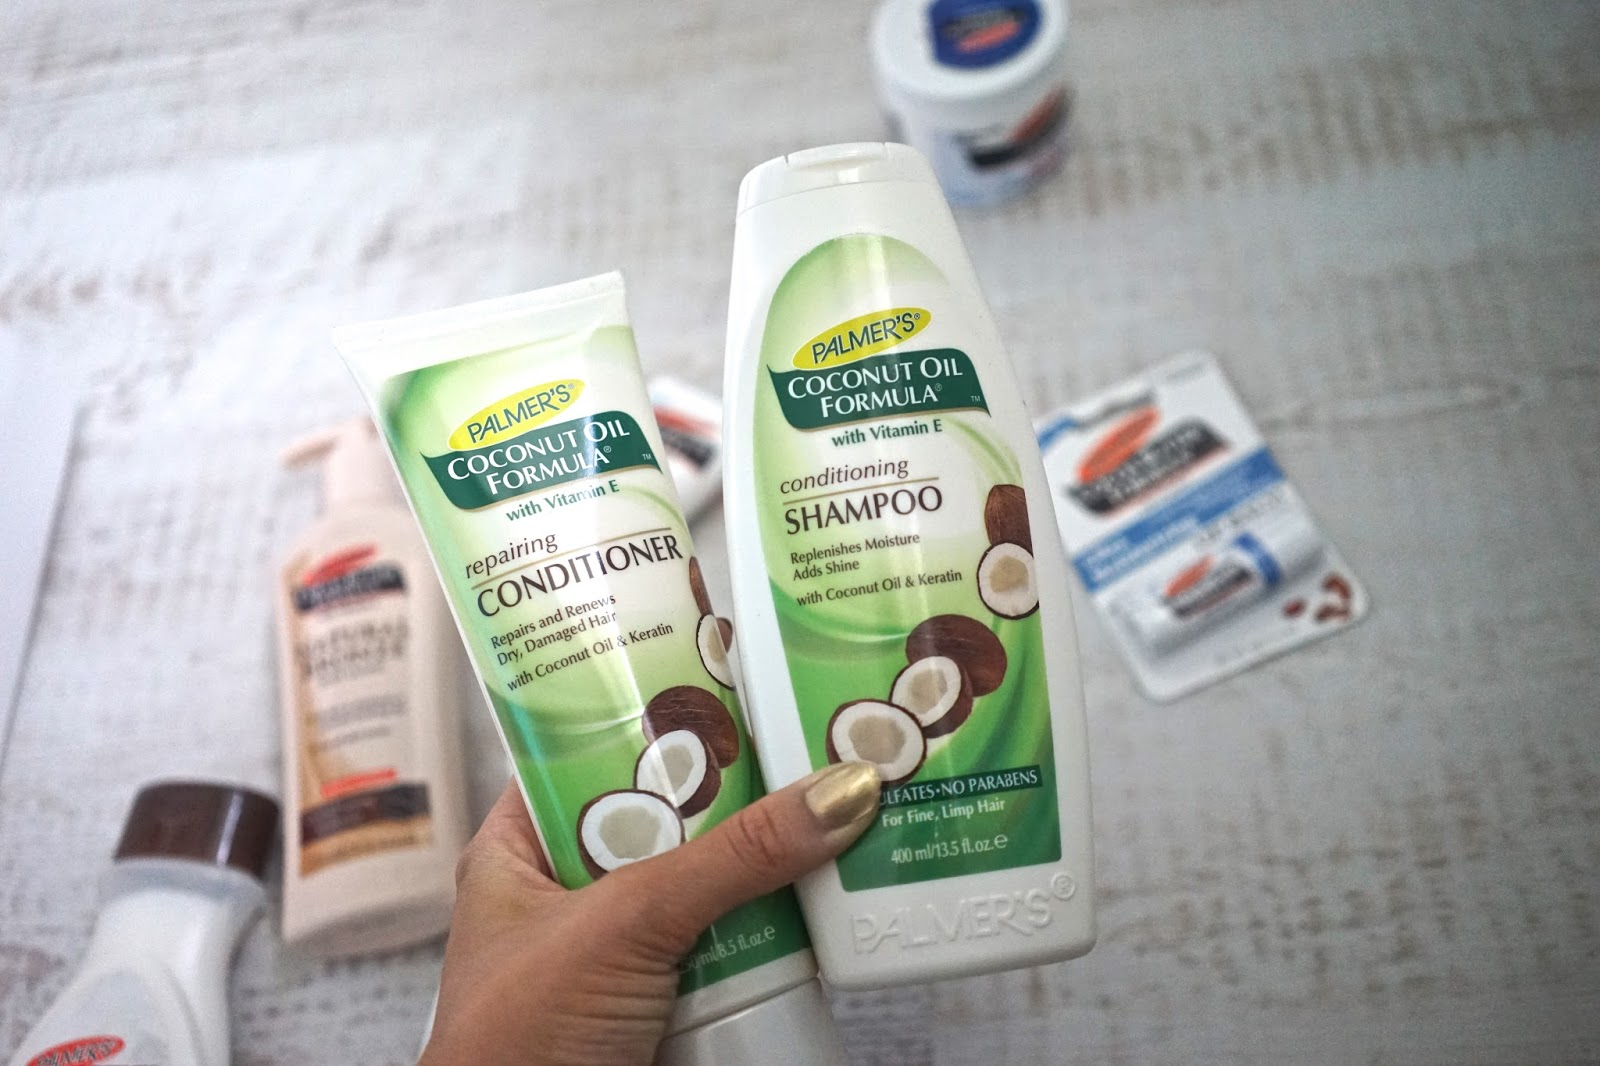 Palmer's cocoa butter for hair